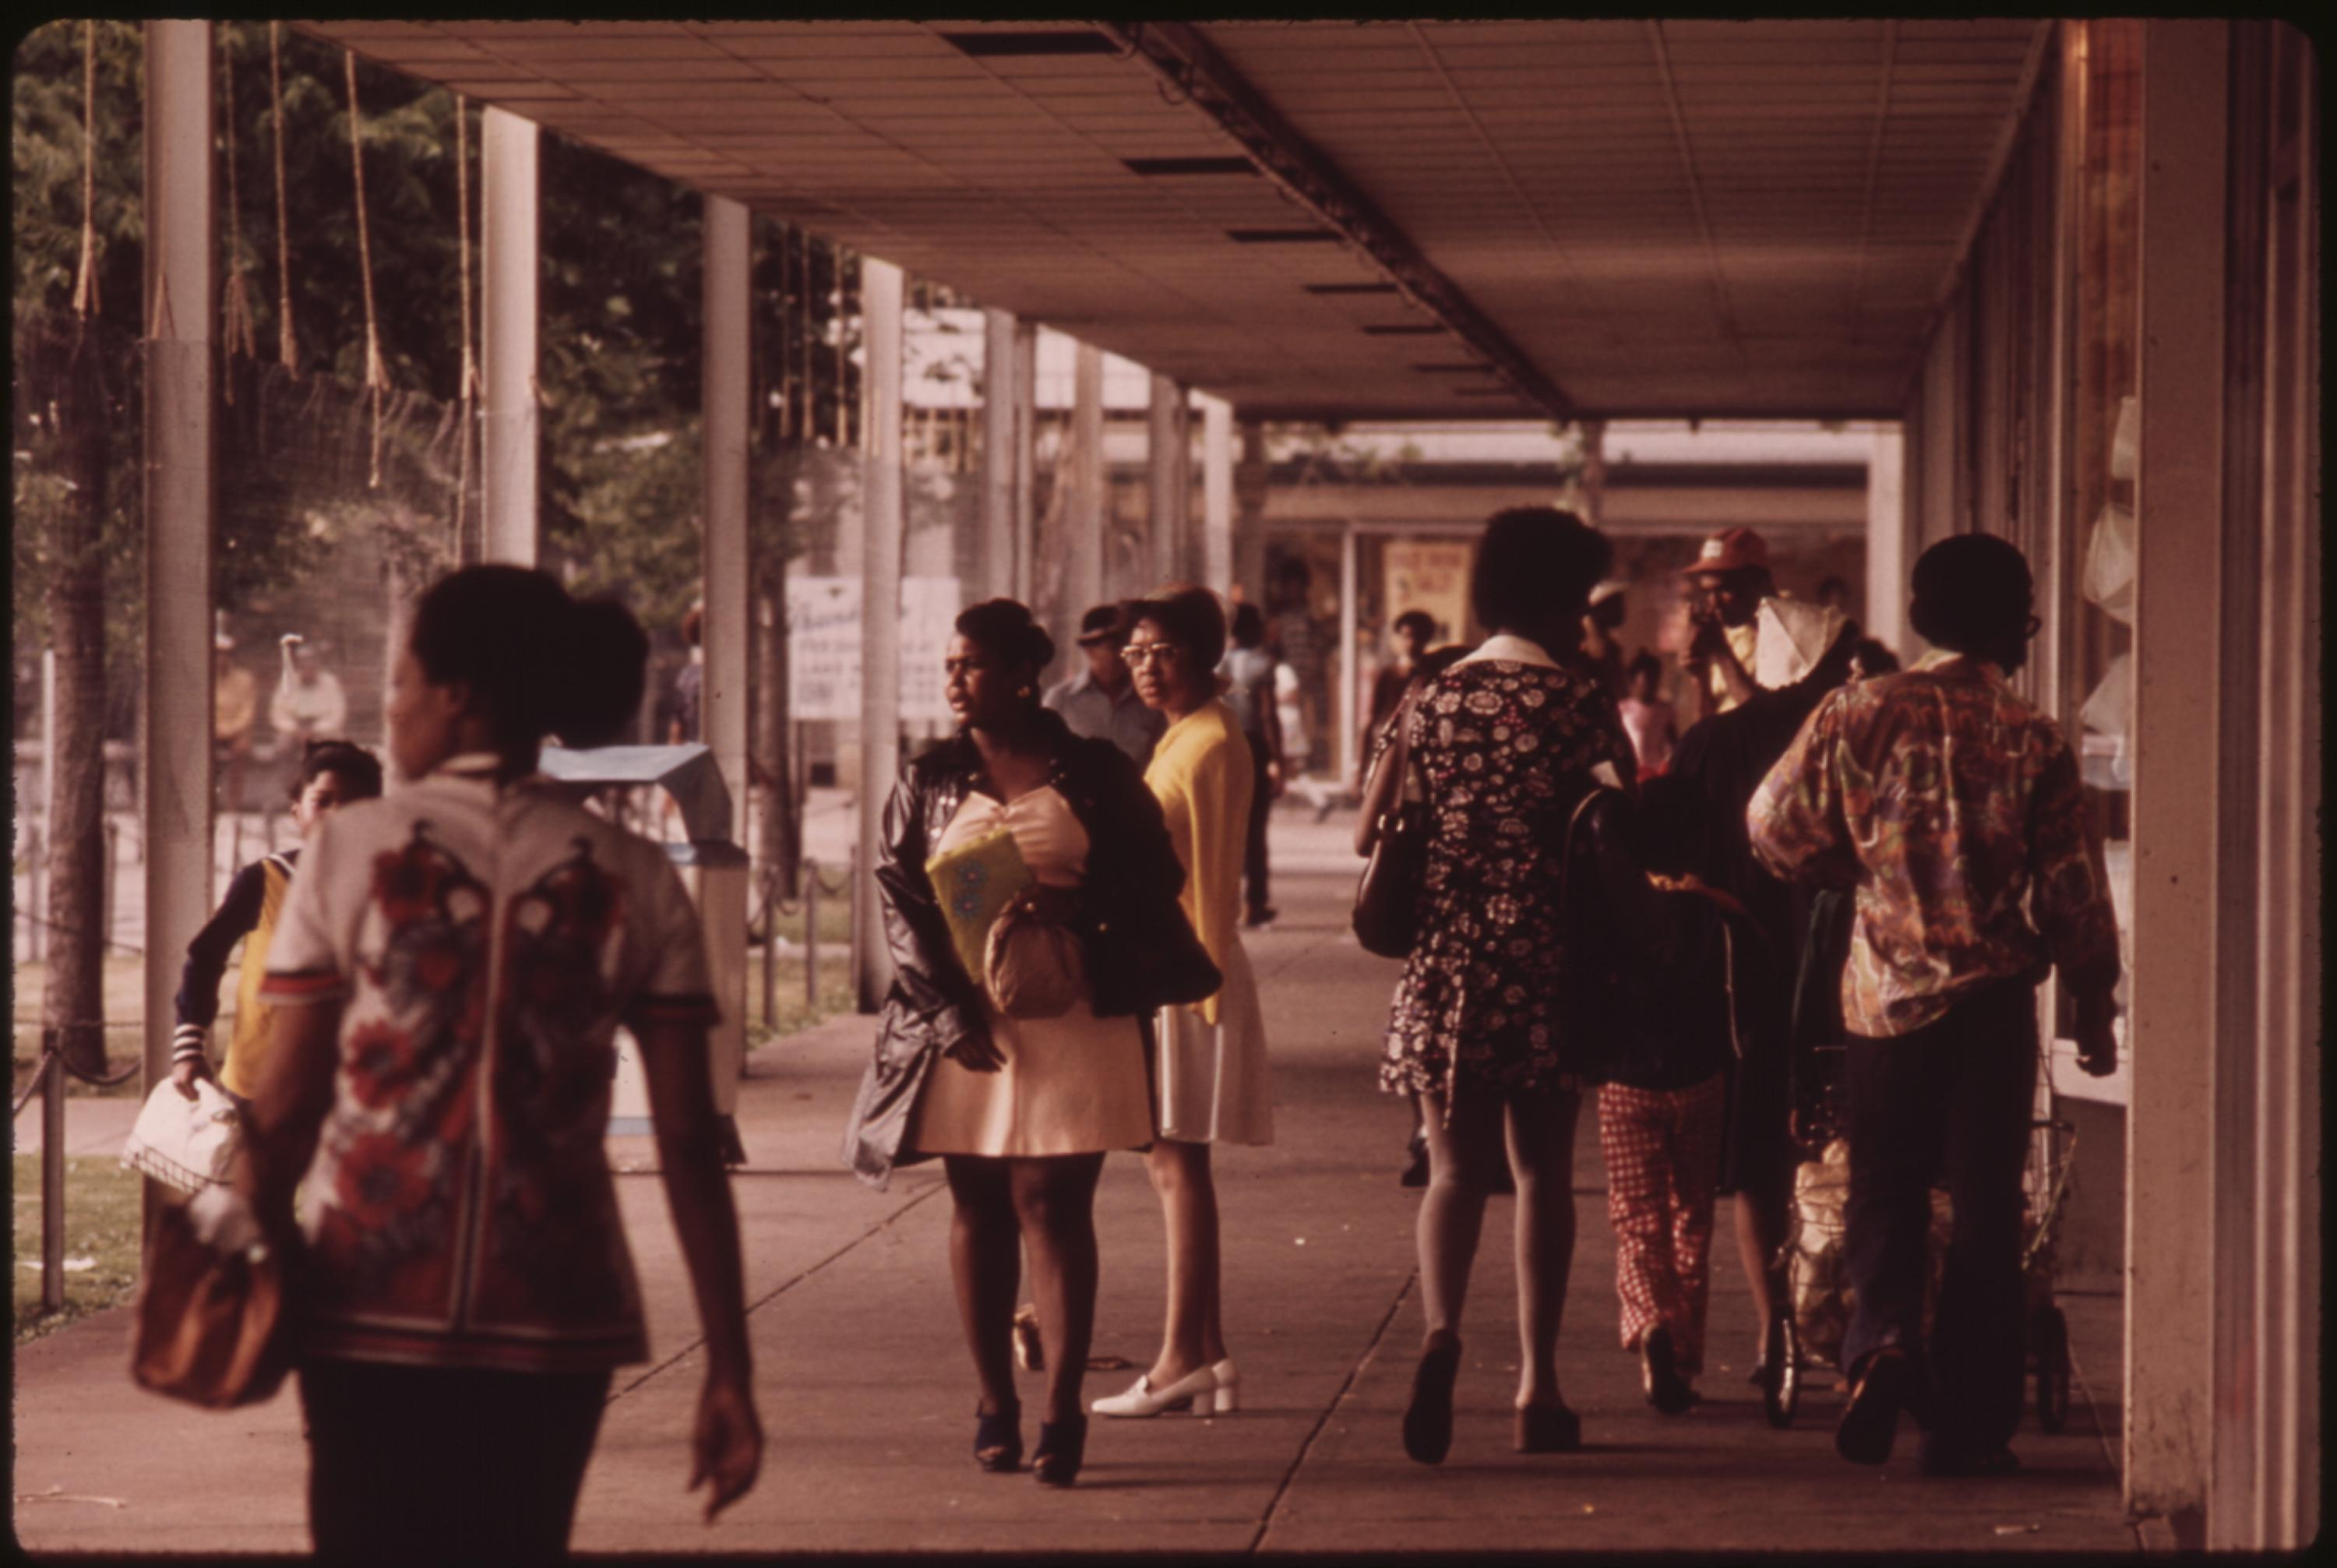 Blacks At Lake Meadows Shopping Center On Chicago's South Side, 06:1973